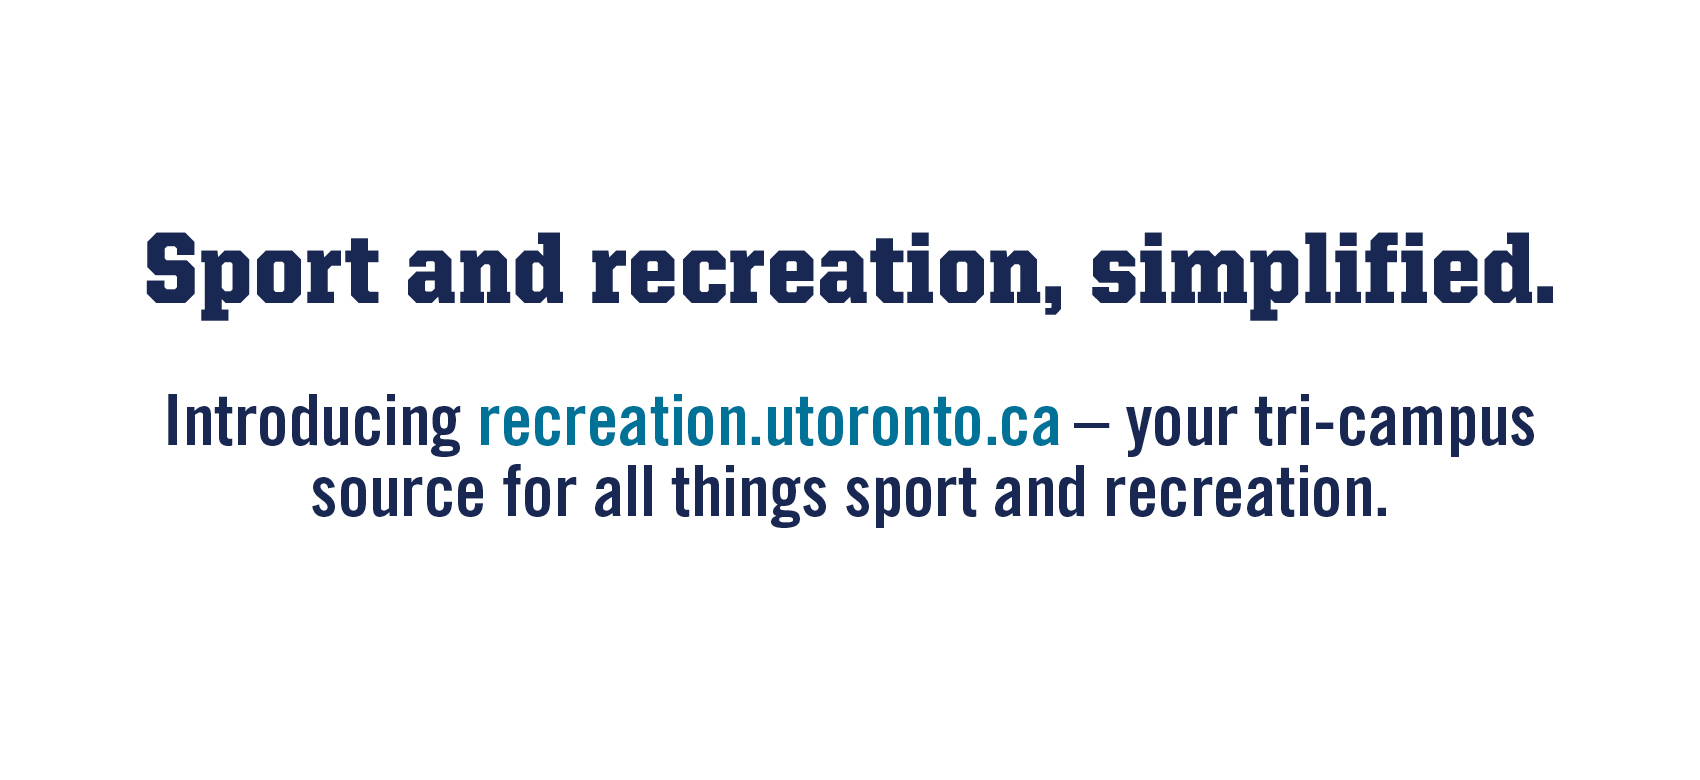 Introducting recreation.utoronto.ca your tricampus source for all things sport and recreation